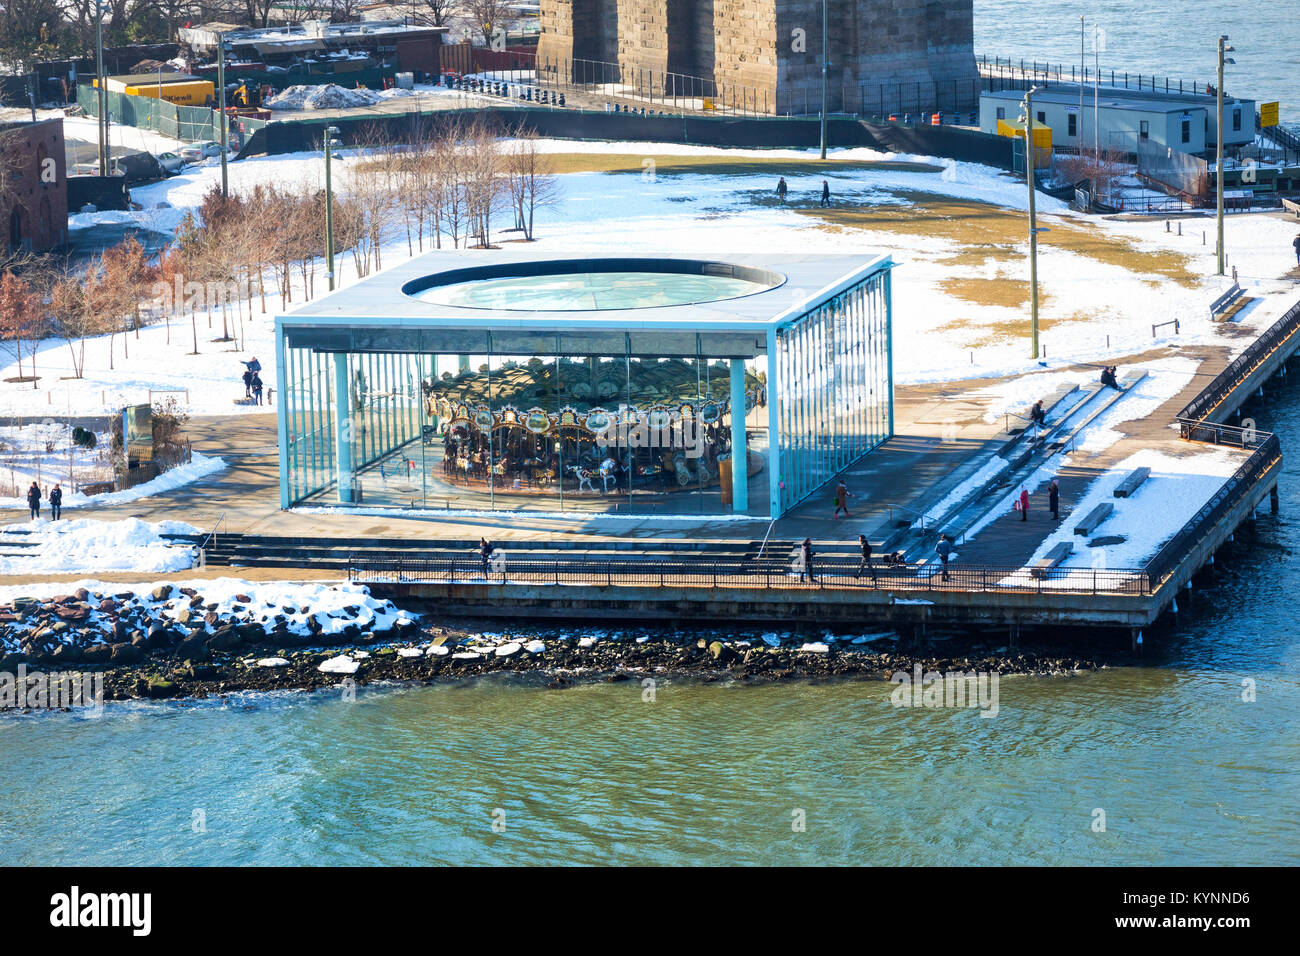 Jane's Carousel in the Dumbo section of Brooklyn in winter - Stock Image